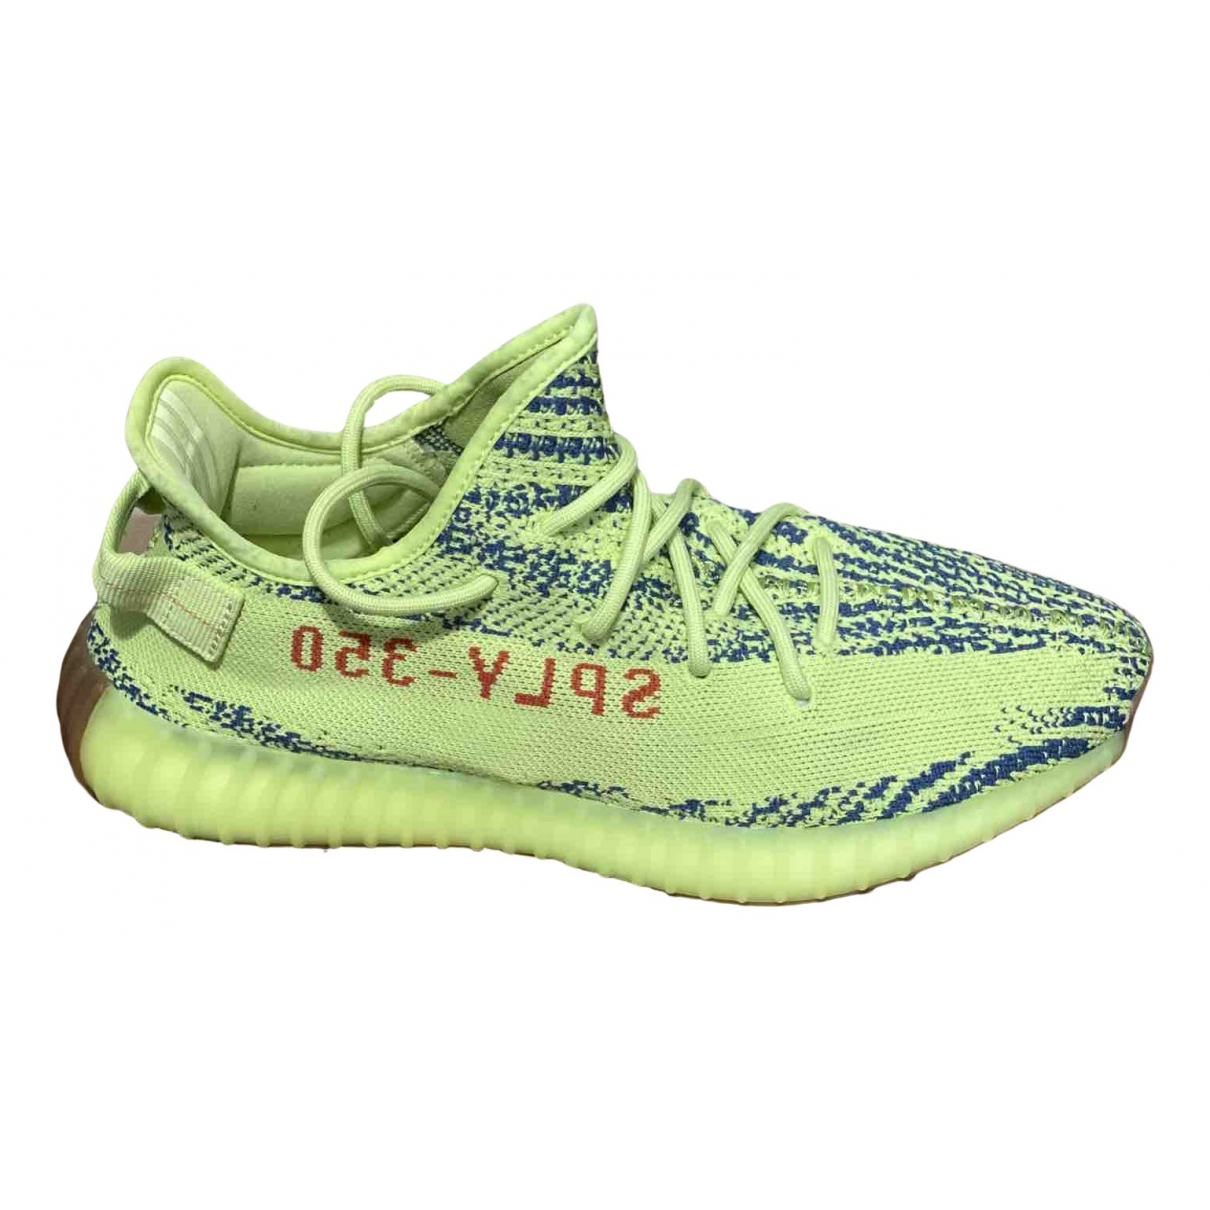 Yeezy X Adidas Boost 350 V2 Yellow Cloth Trainers for Men 44.5 EU